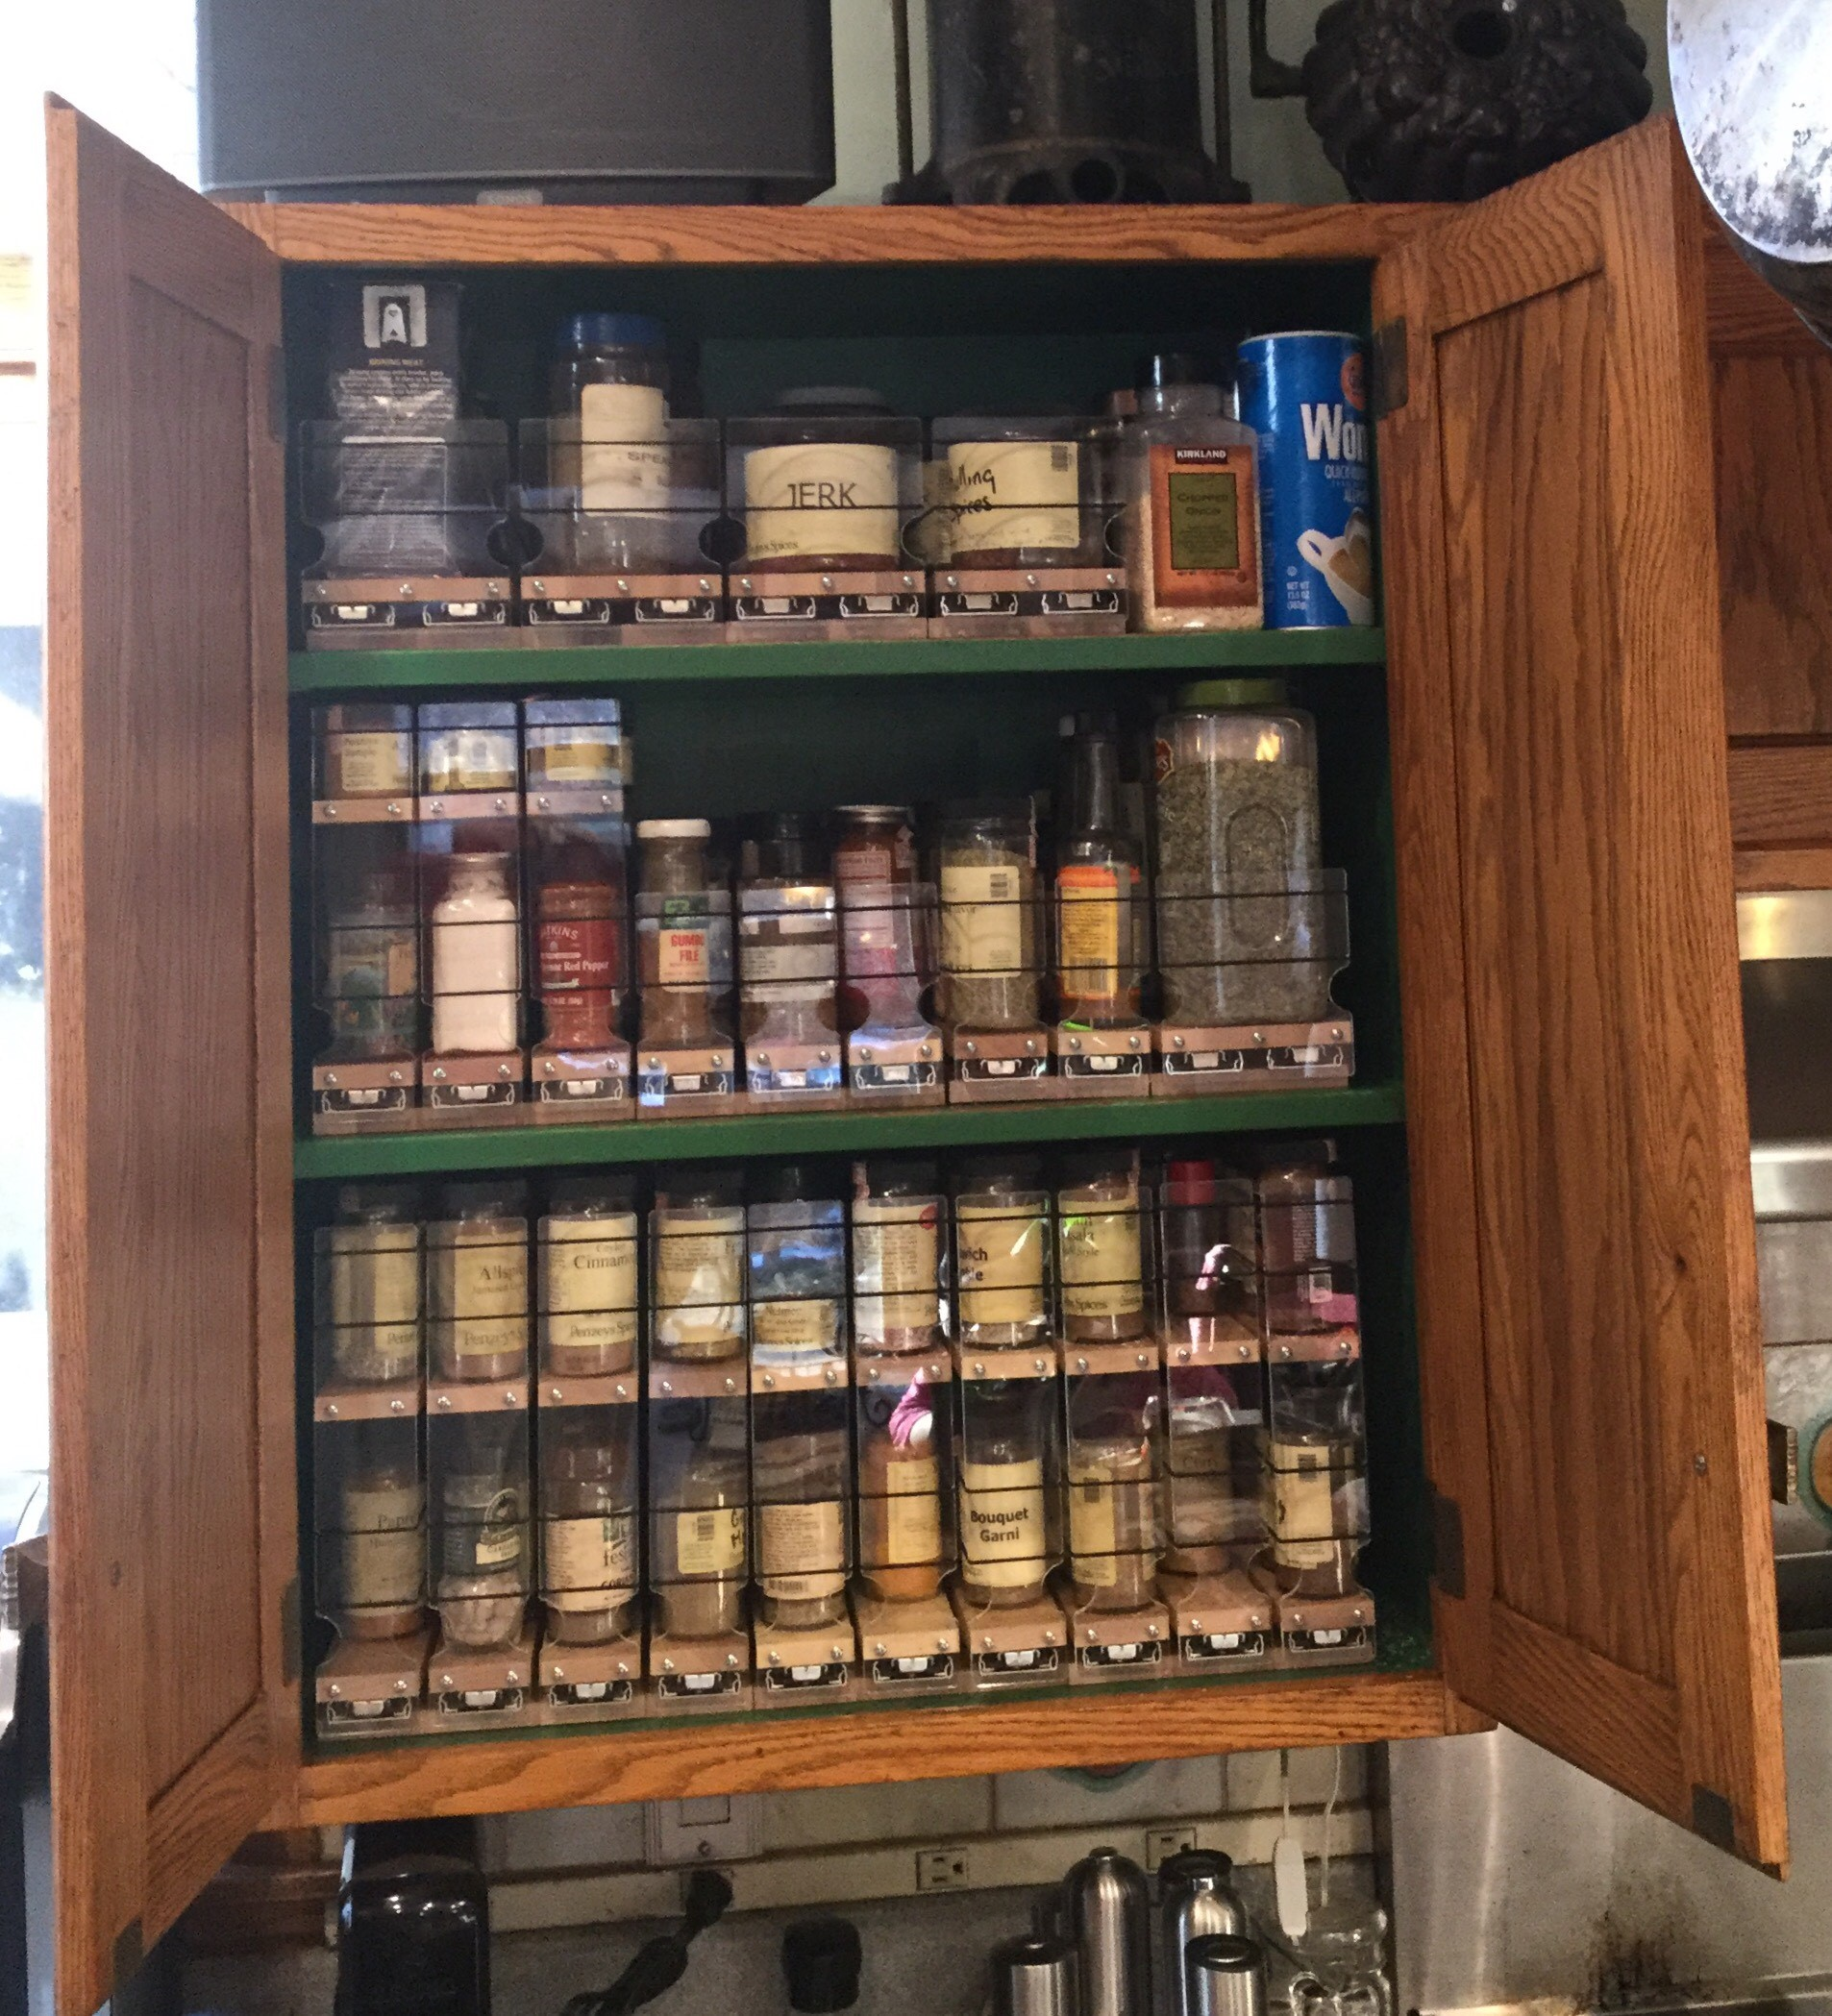 Cabinet Organization with Spice Racks